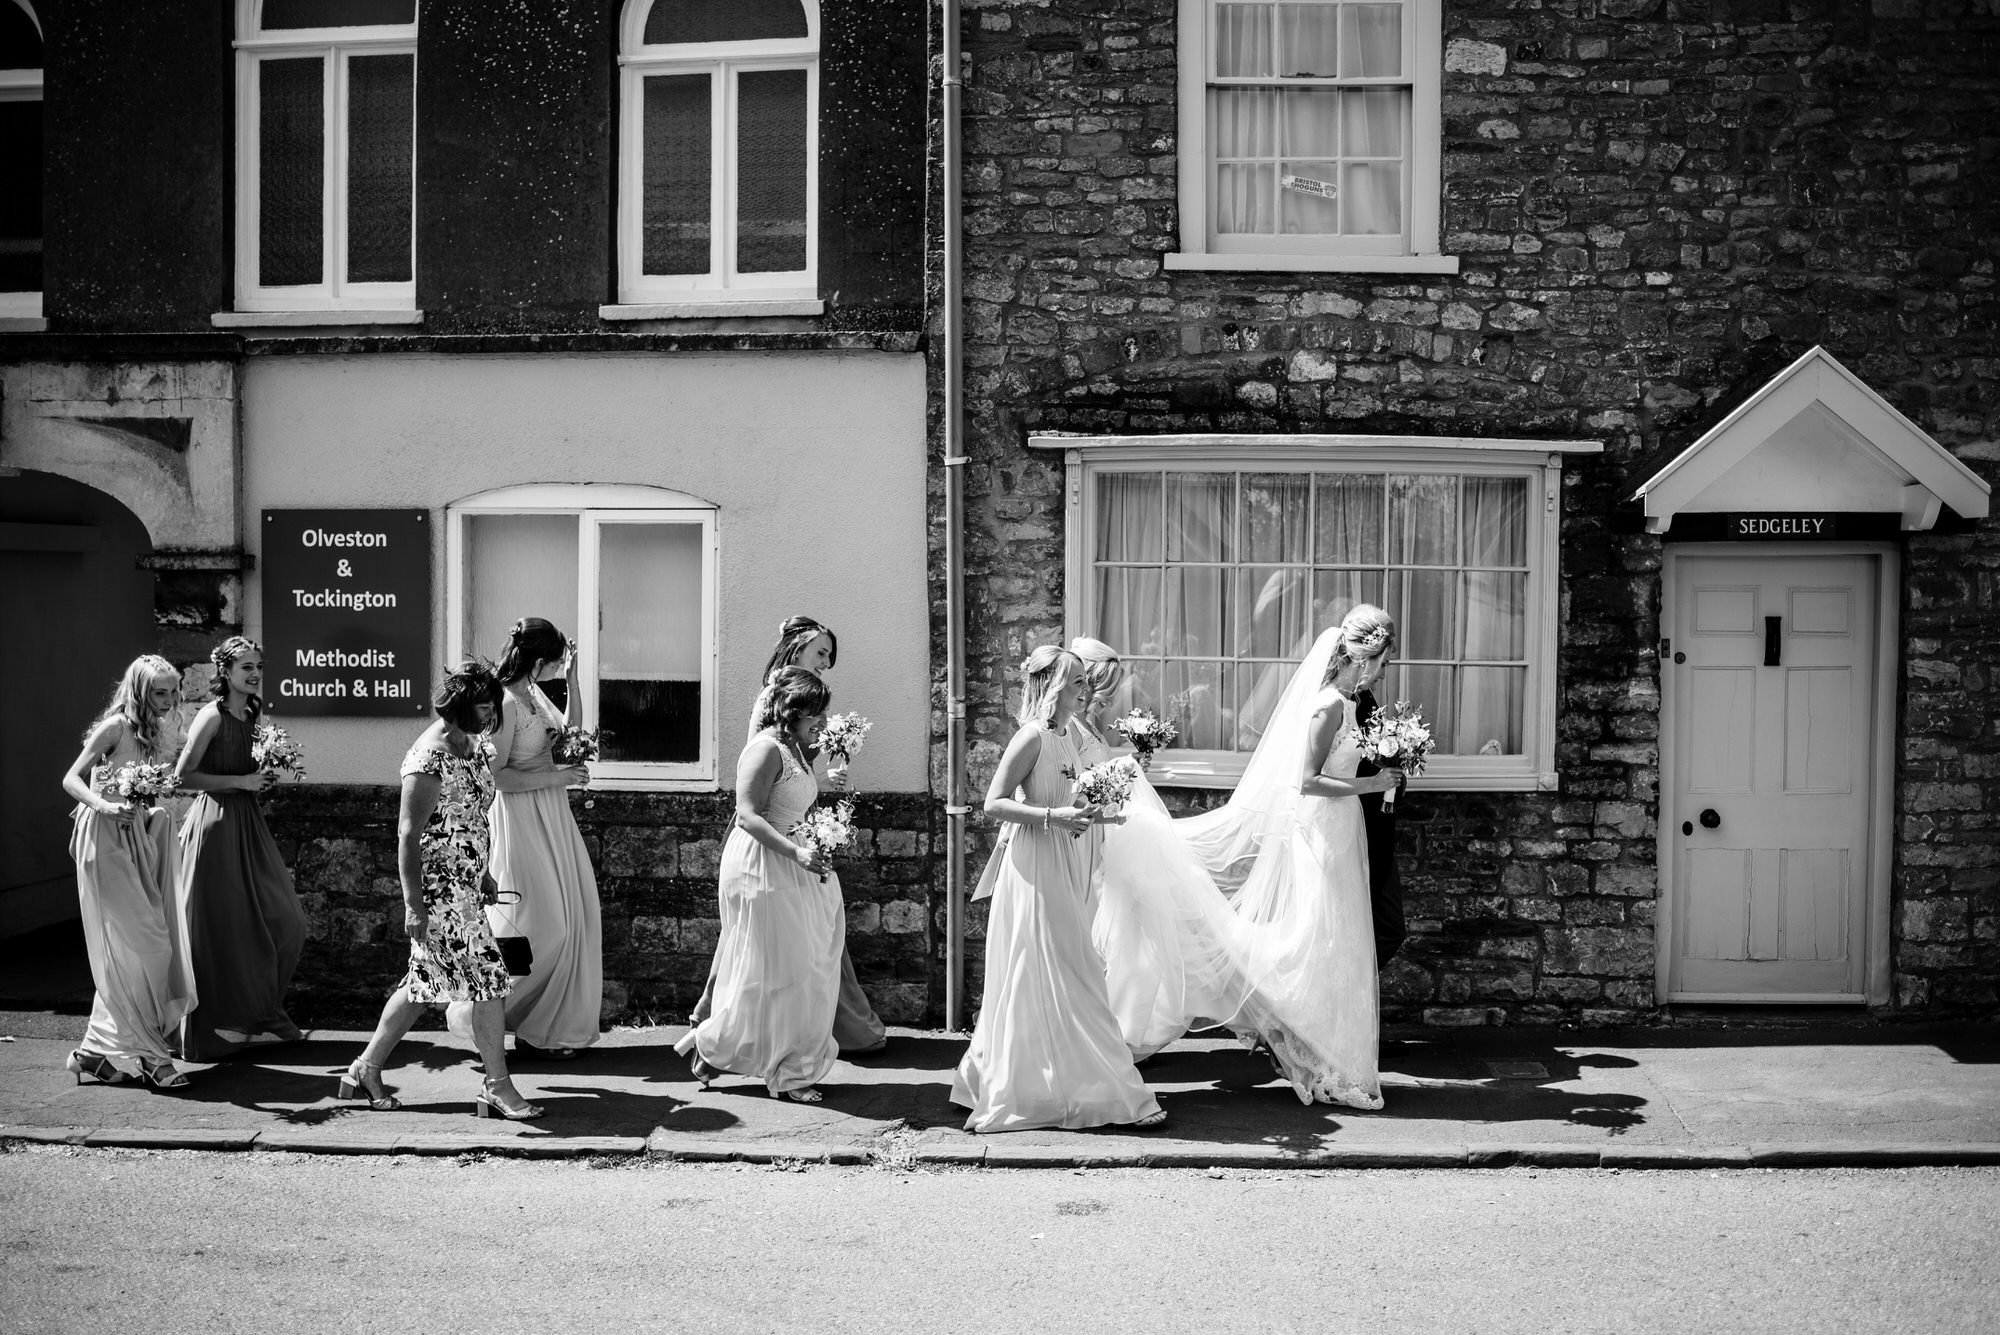 St marys church olveston wedding 6